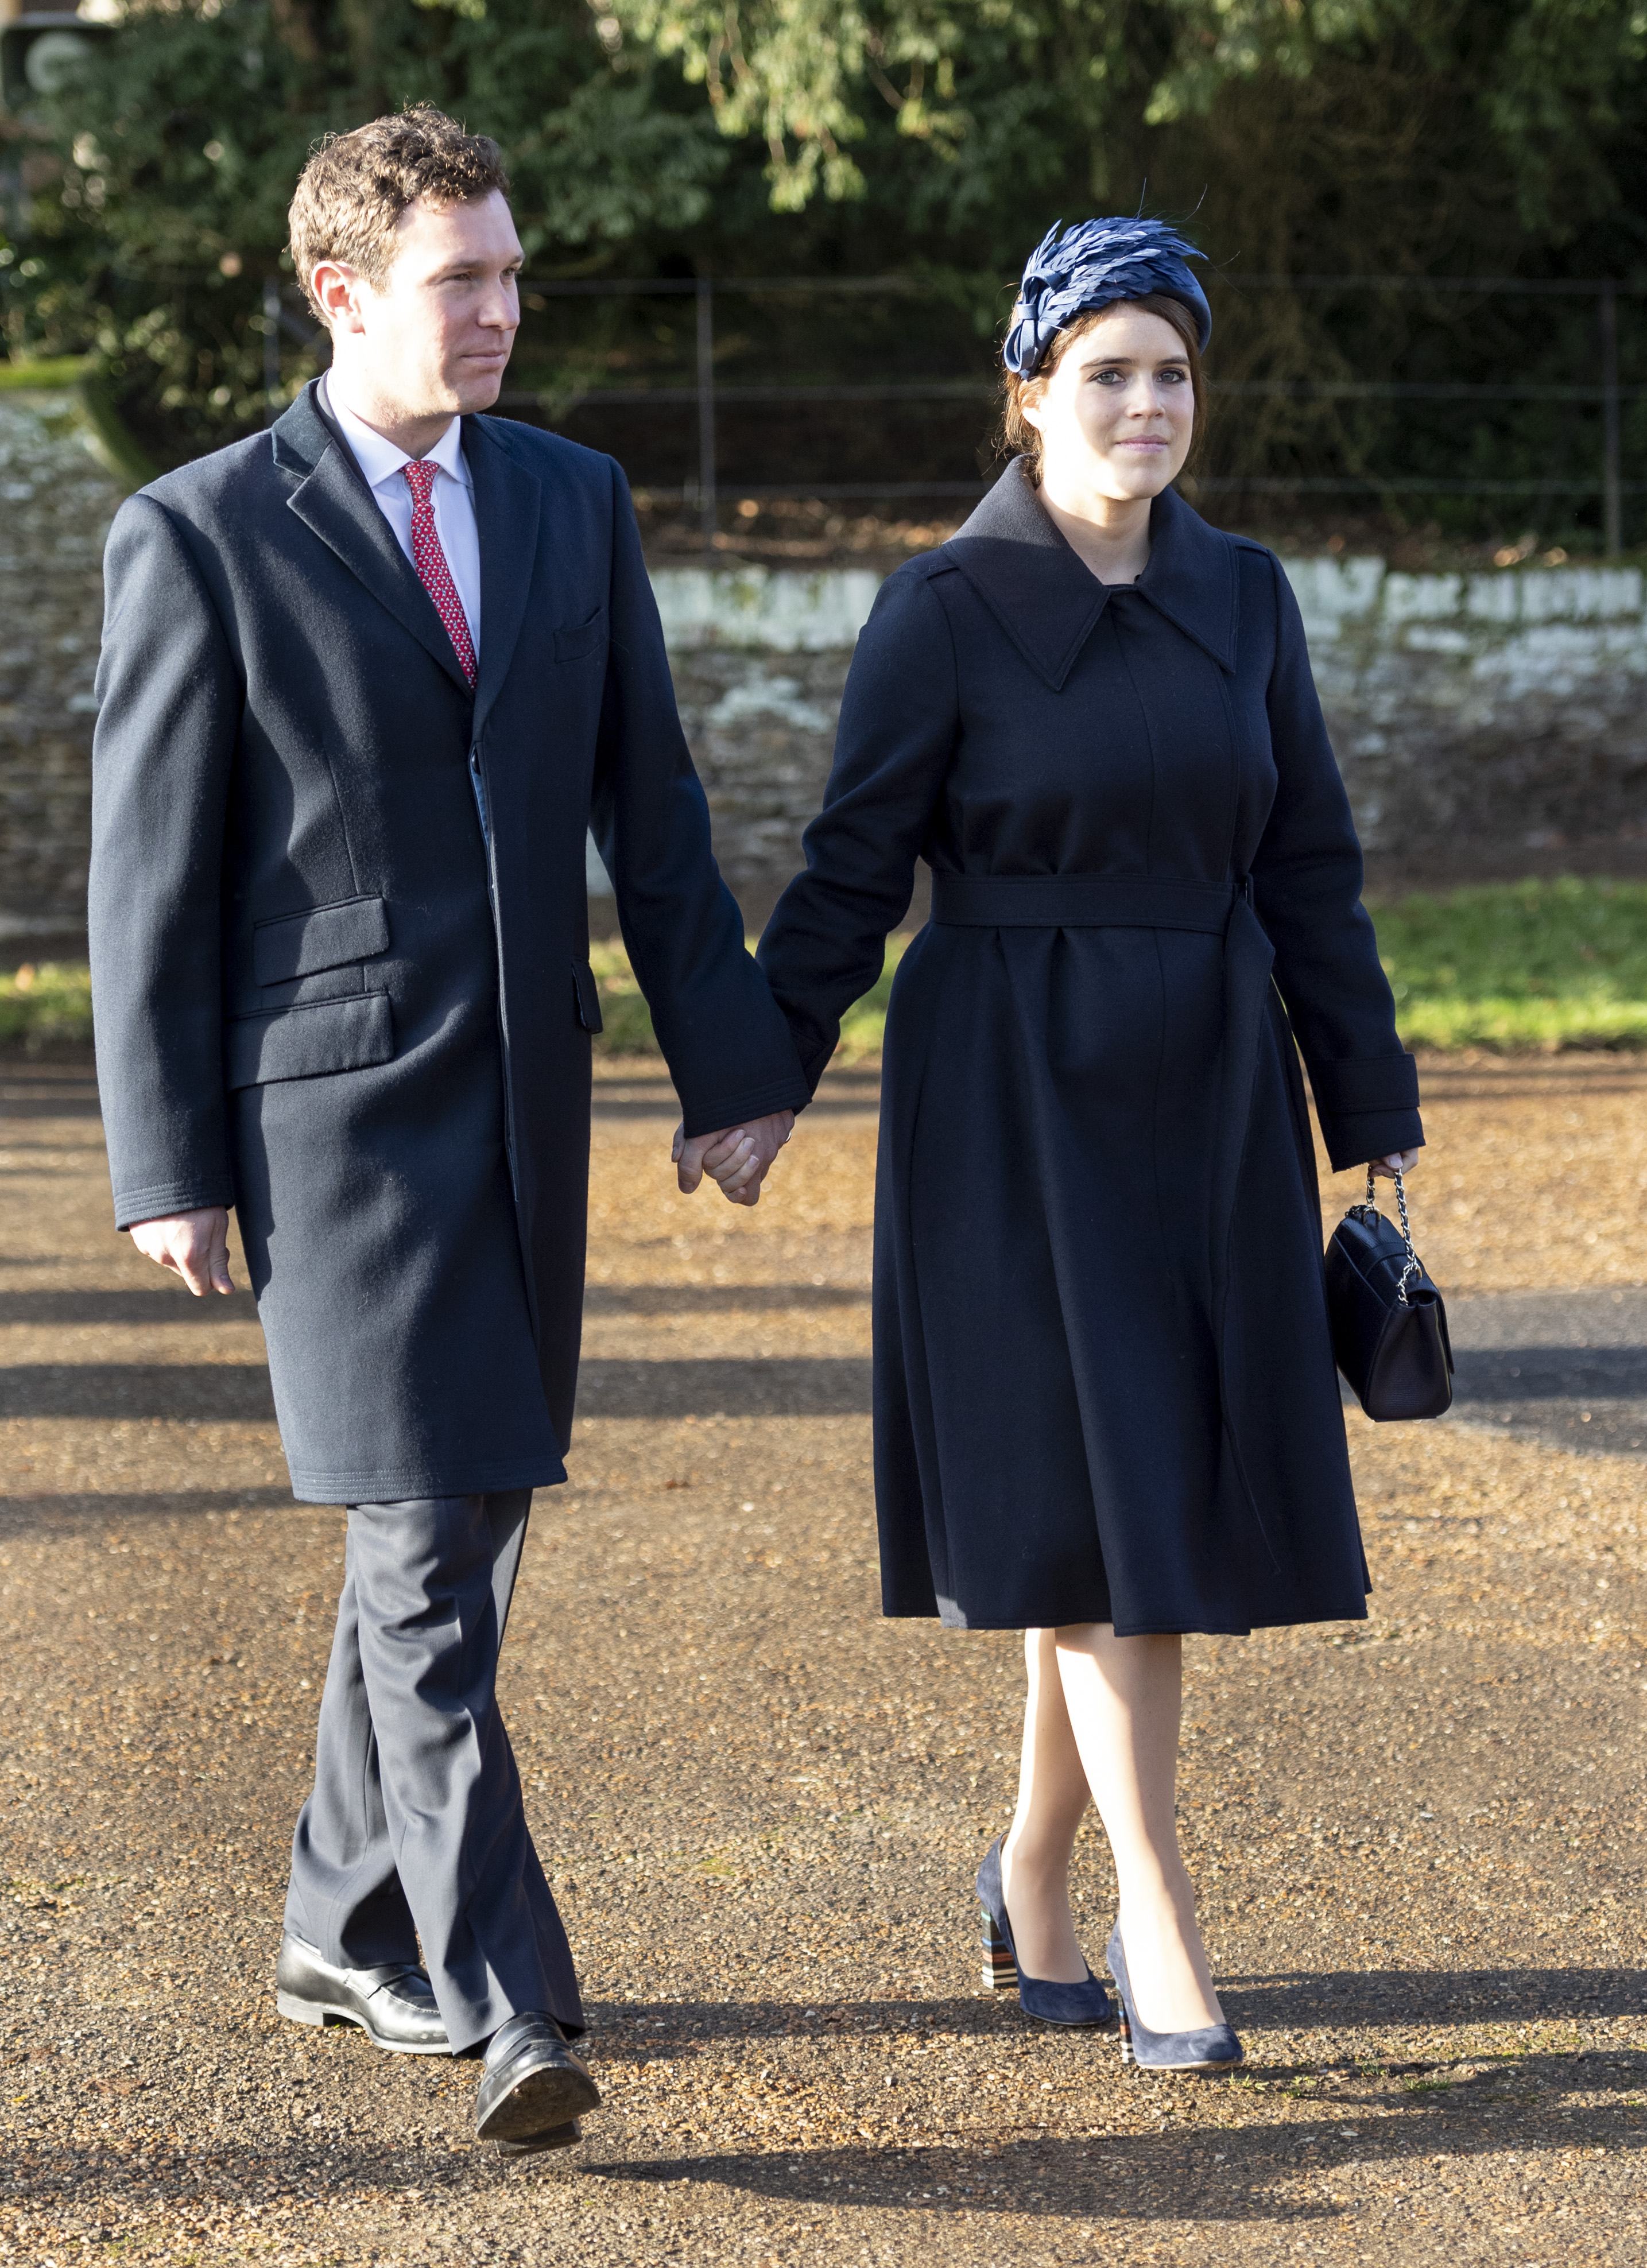 KING'S LYNN, ENGLAND - DECEMBER 25: Princess Eugenie and Jack Brooksbank attend the Christmas Day Church service at Church of St Mary Magdalene on the Sandringham estate on December 25, 2019 in King's Lynn, United Kingdom. (Photo by UK Press Pool/UK Press via Getty Images)